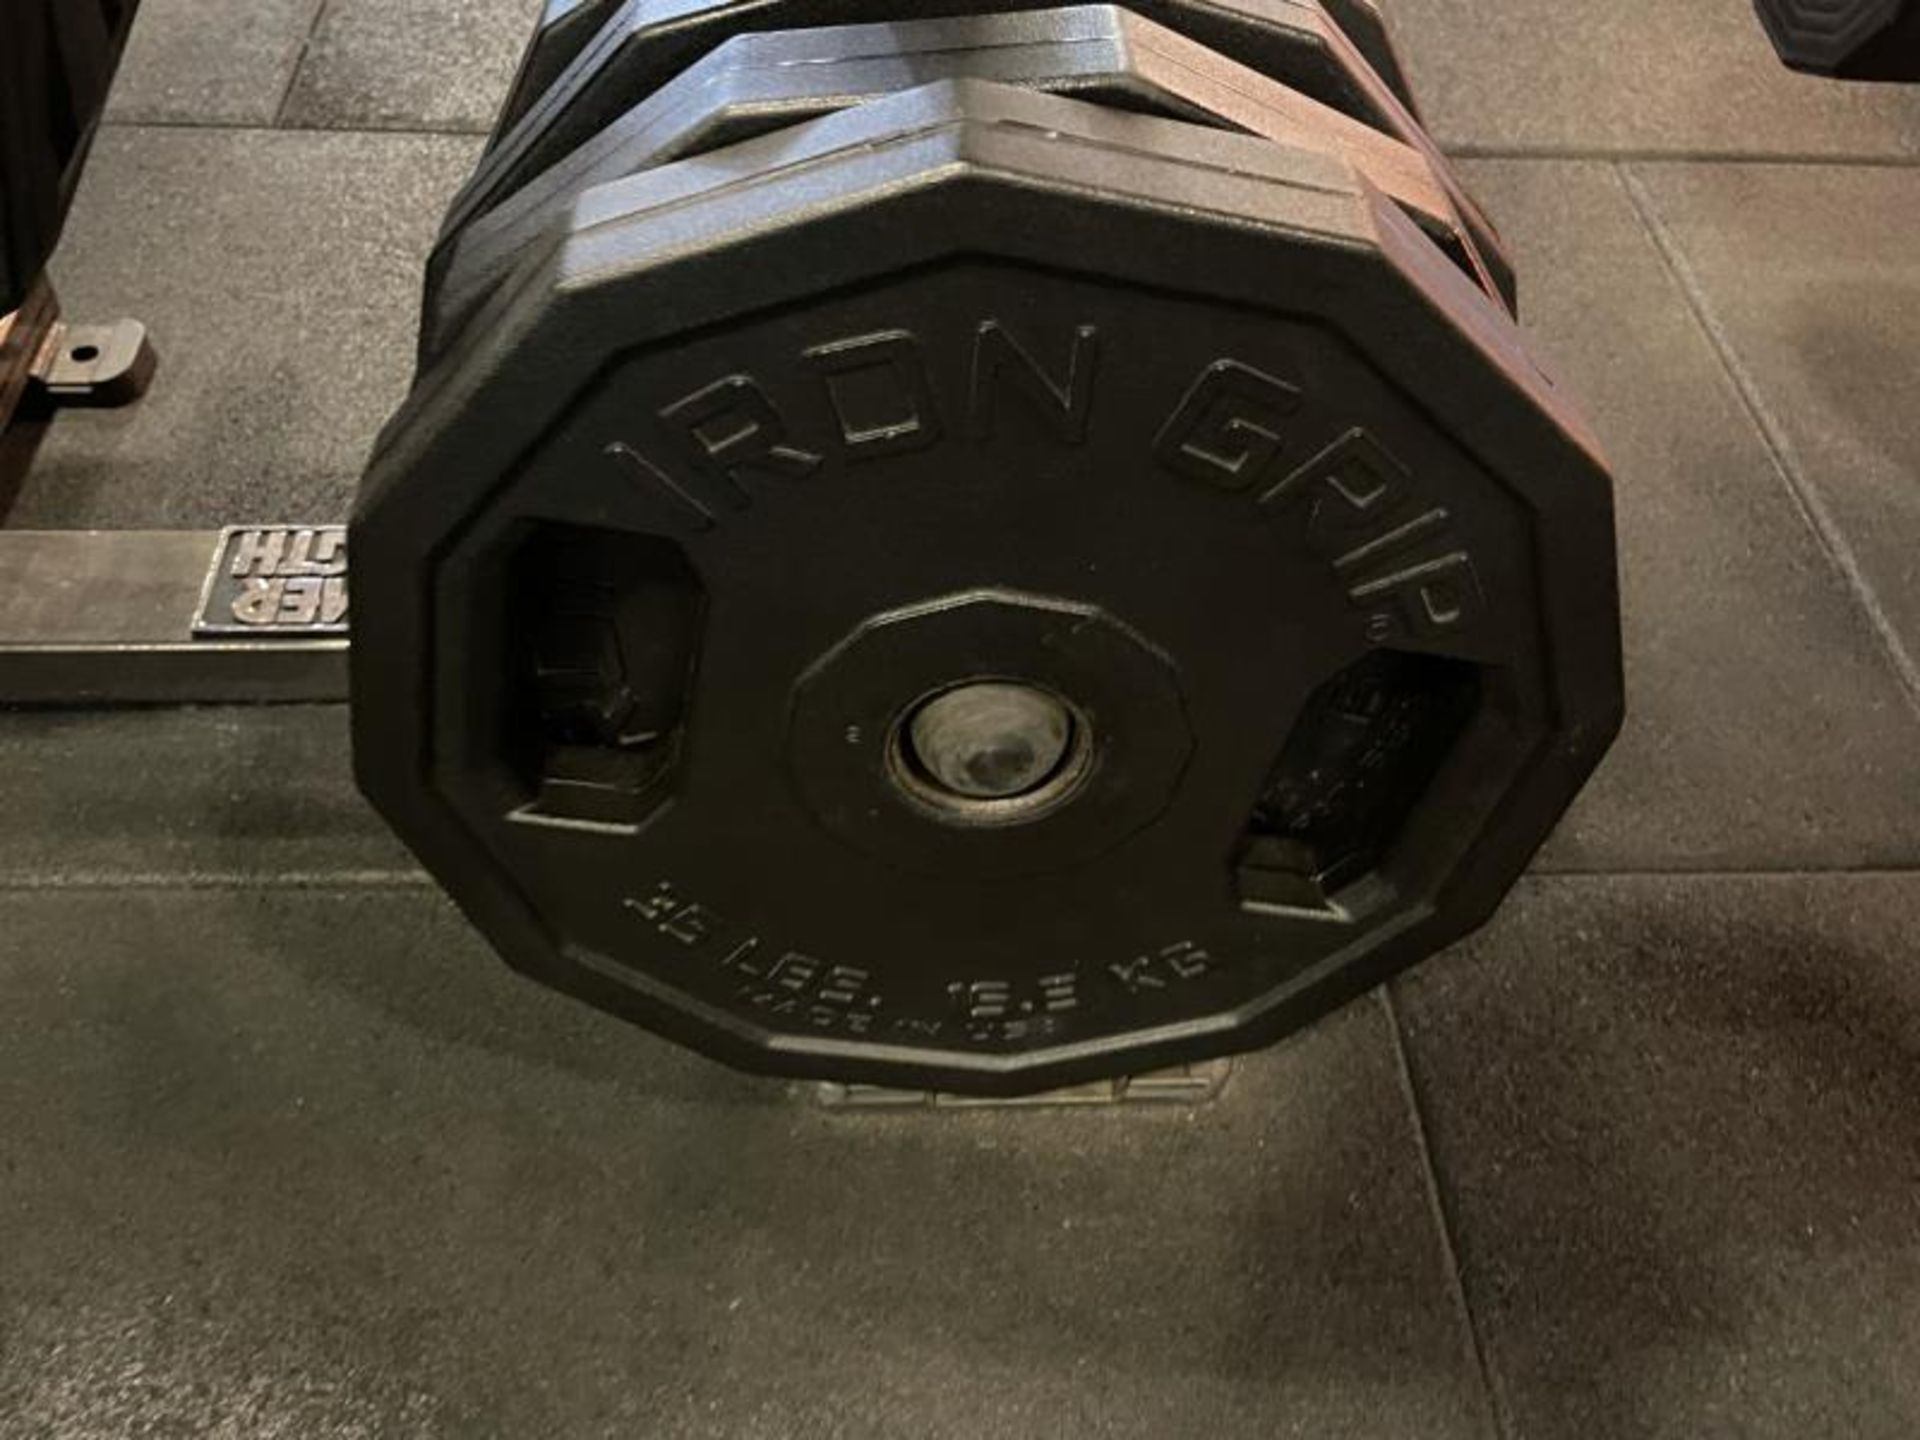 Hammer Strength Rack with 26 Iron Grip Weighted Plates - Image 4 of 5